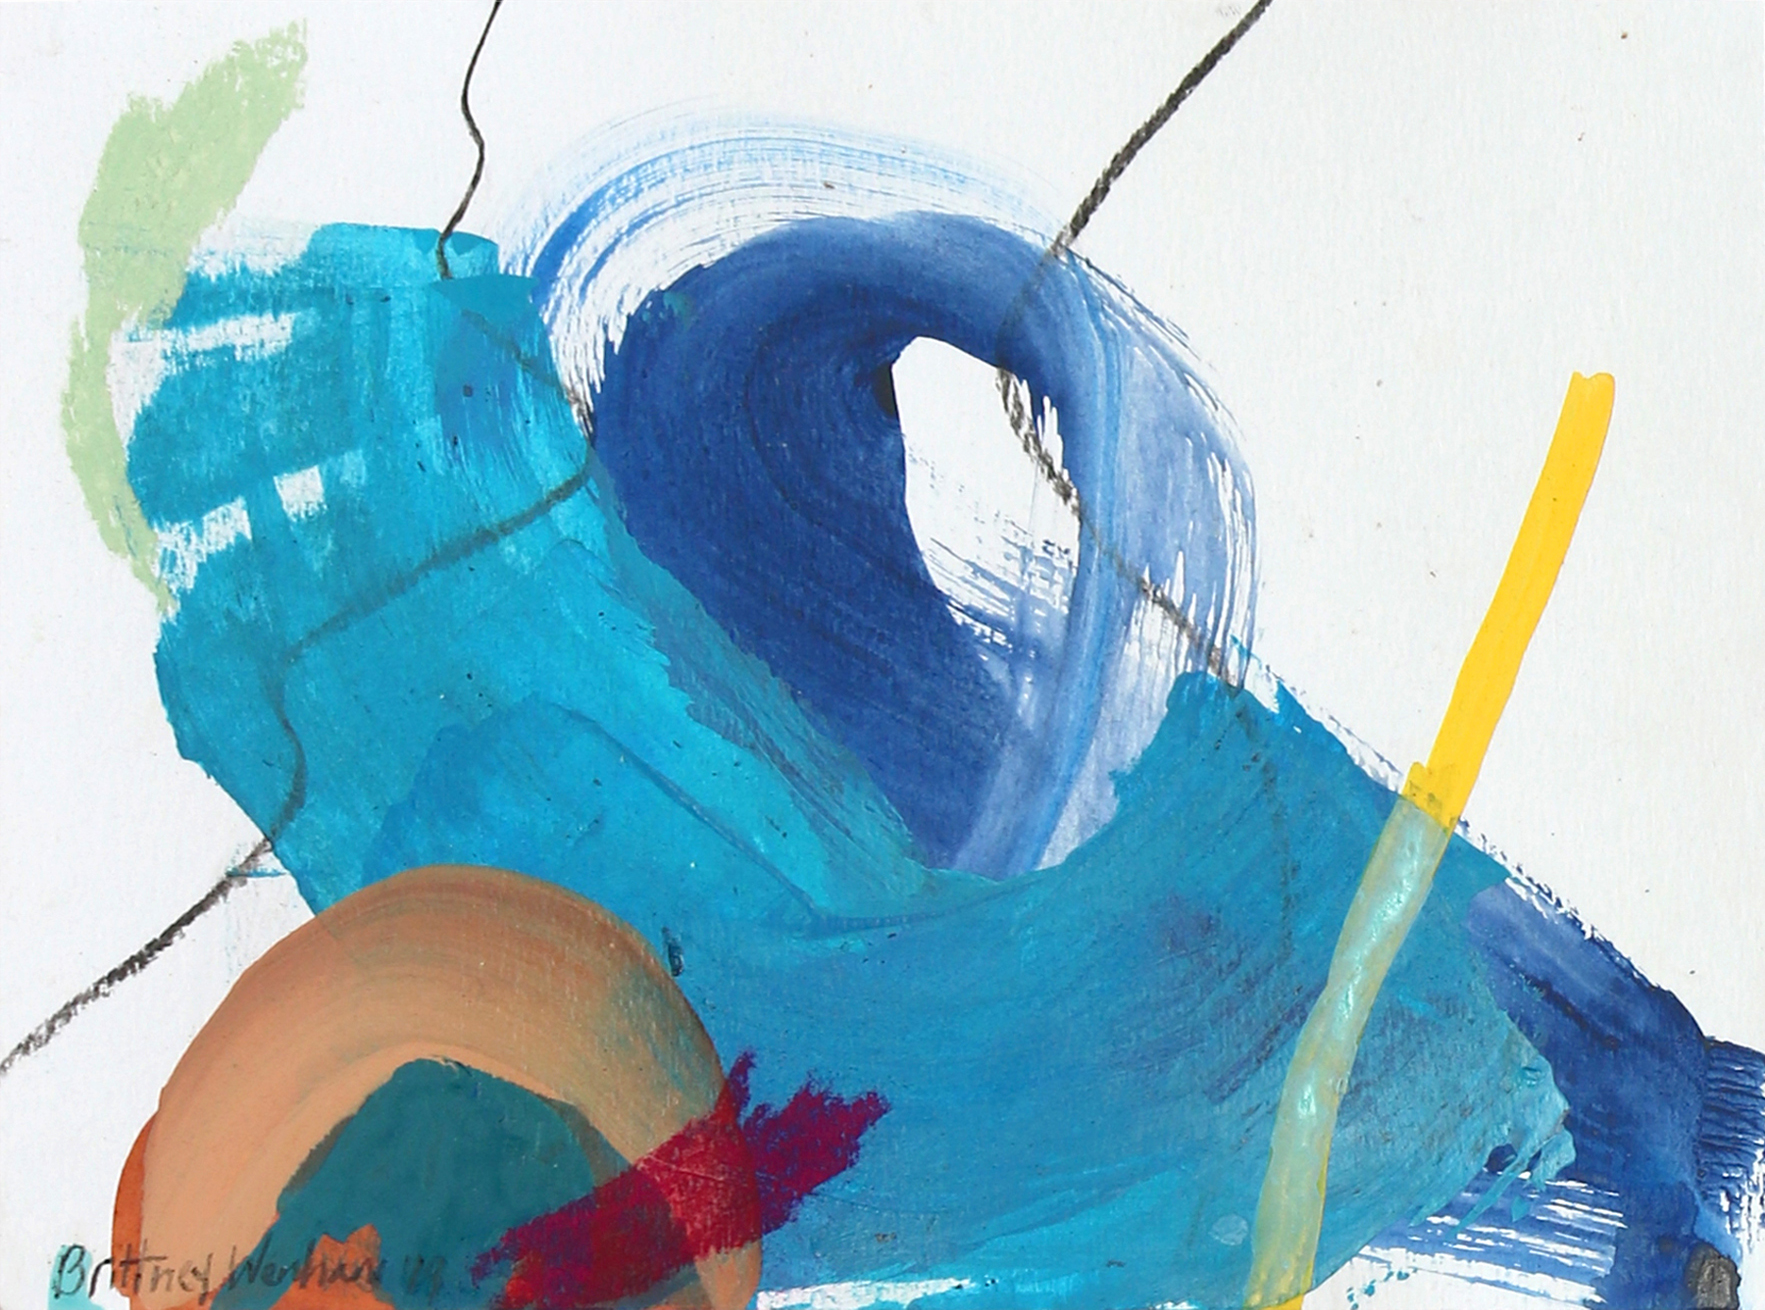 "AS NEGATIVE IONS GO #6  8.3"" x 11.7"", Acrylic, soft pastel and charcoal on paper, 2019"